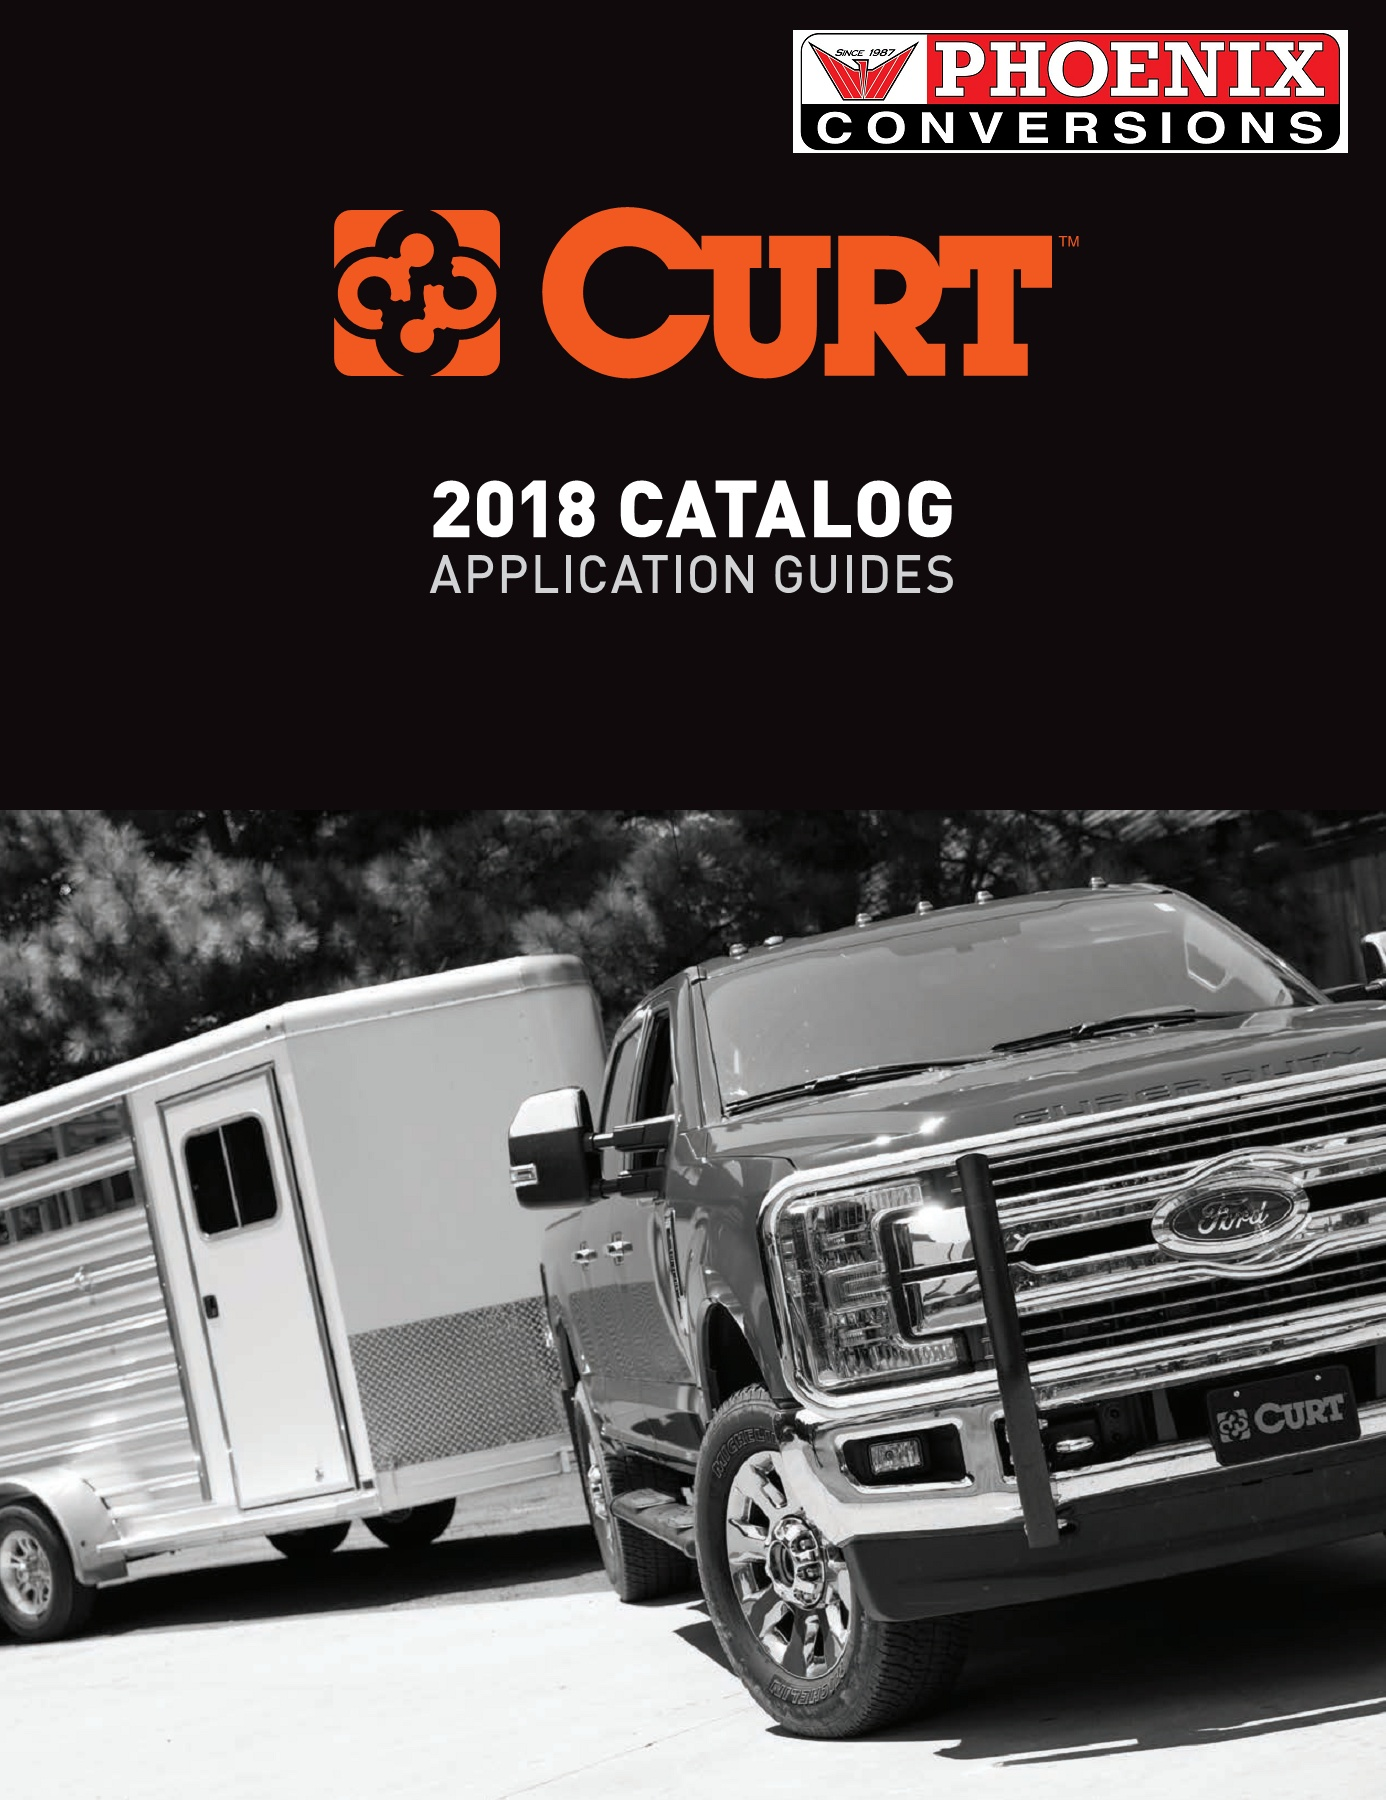 hight resolution of curt 2018 catalog with app guide